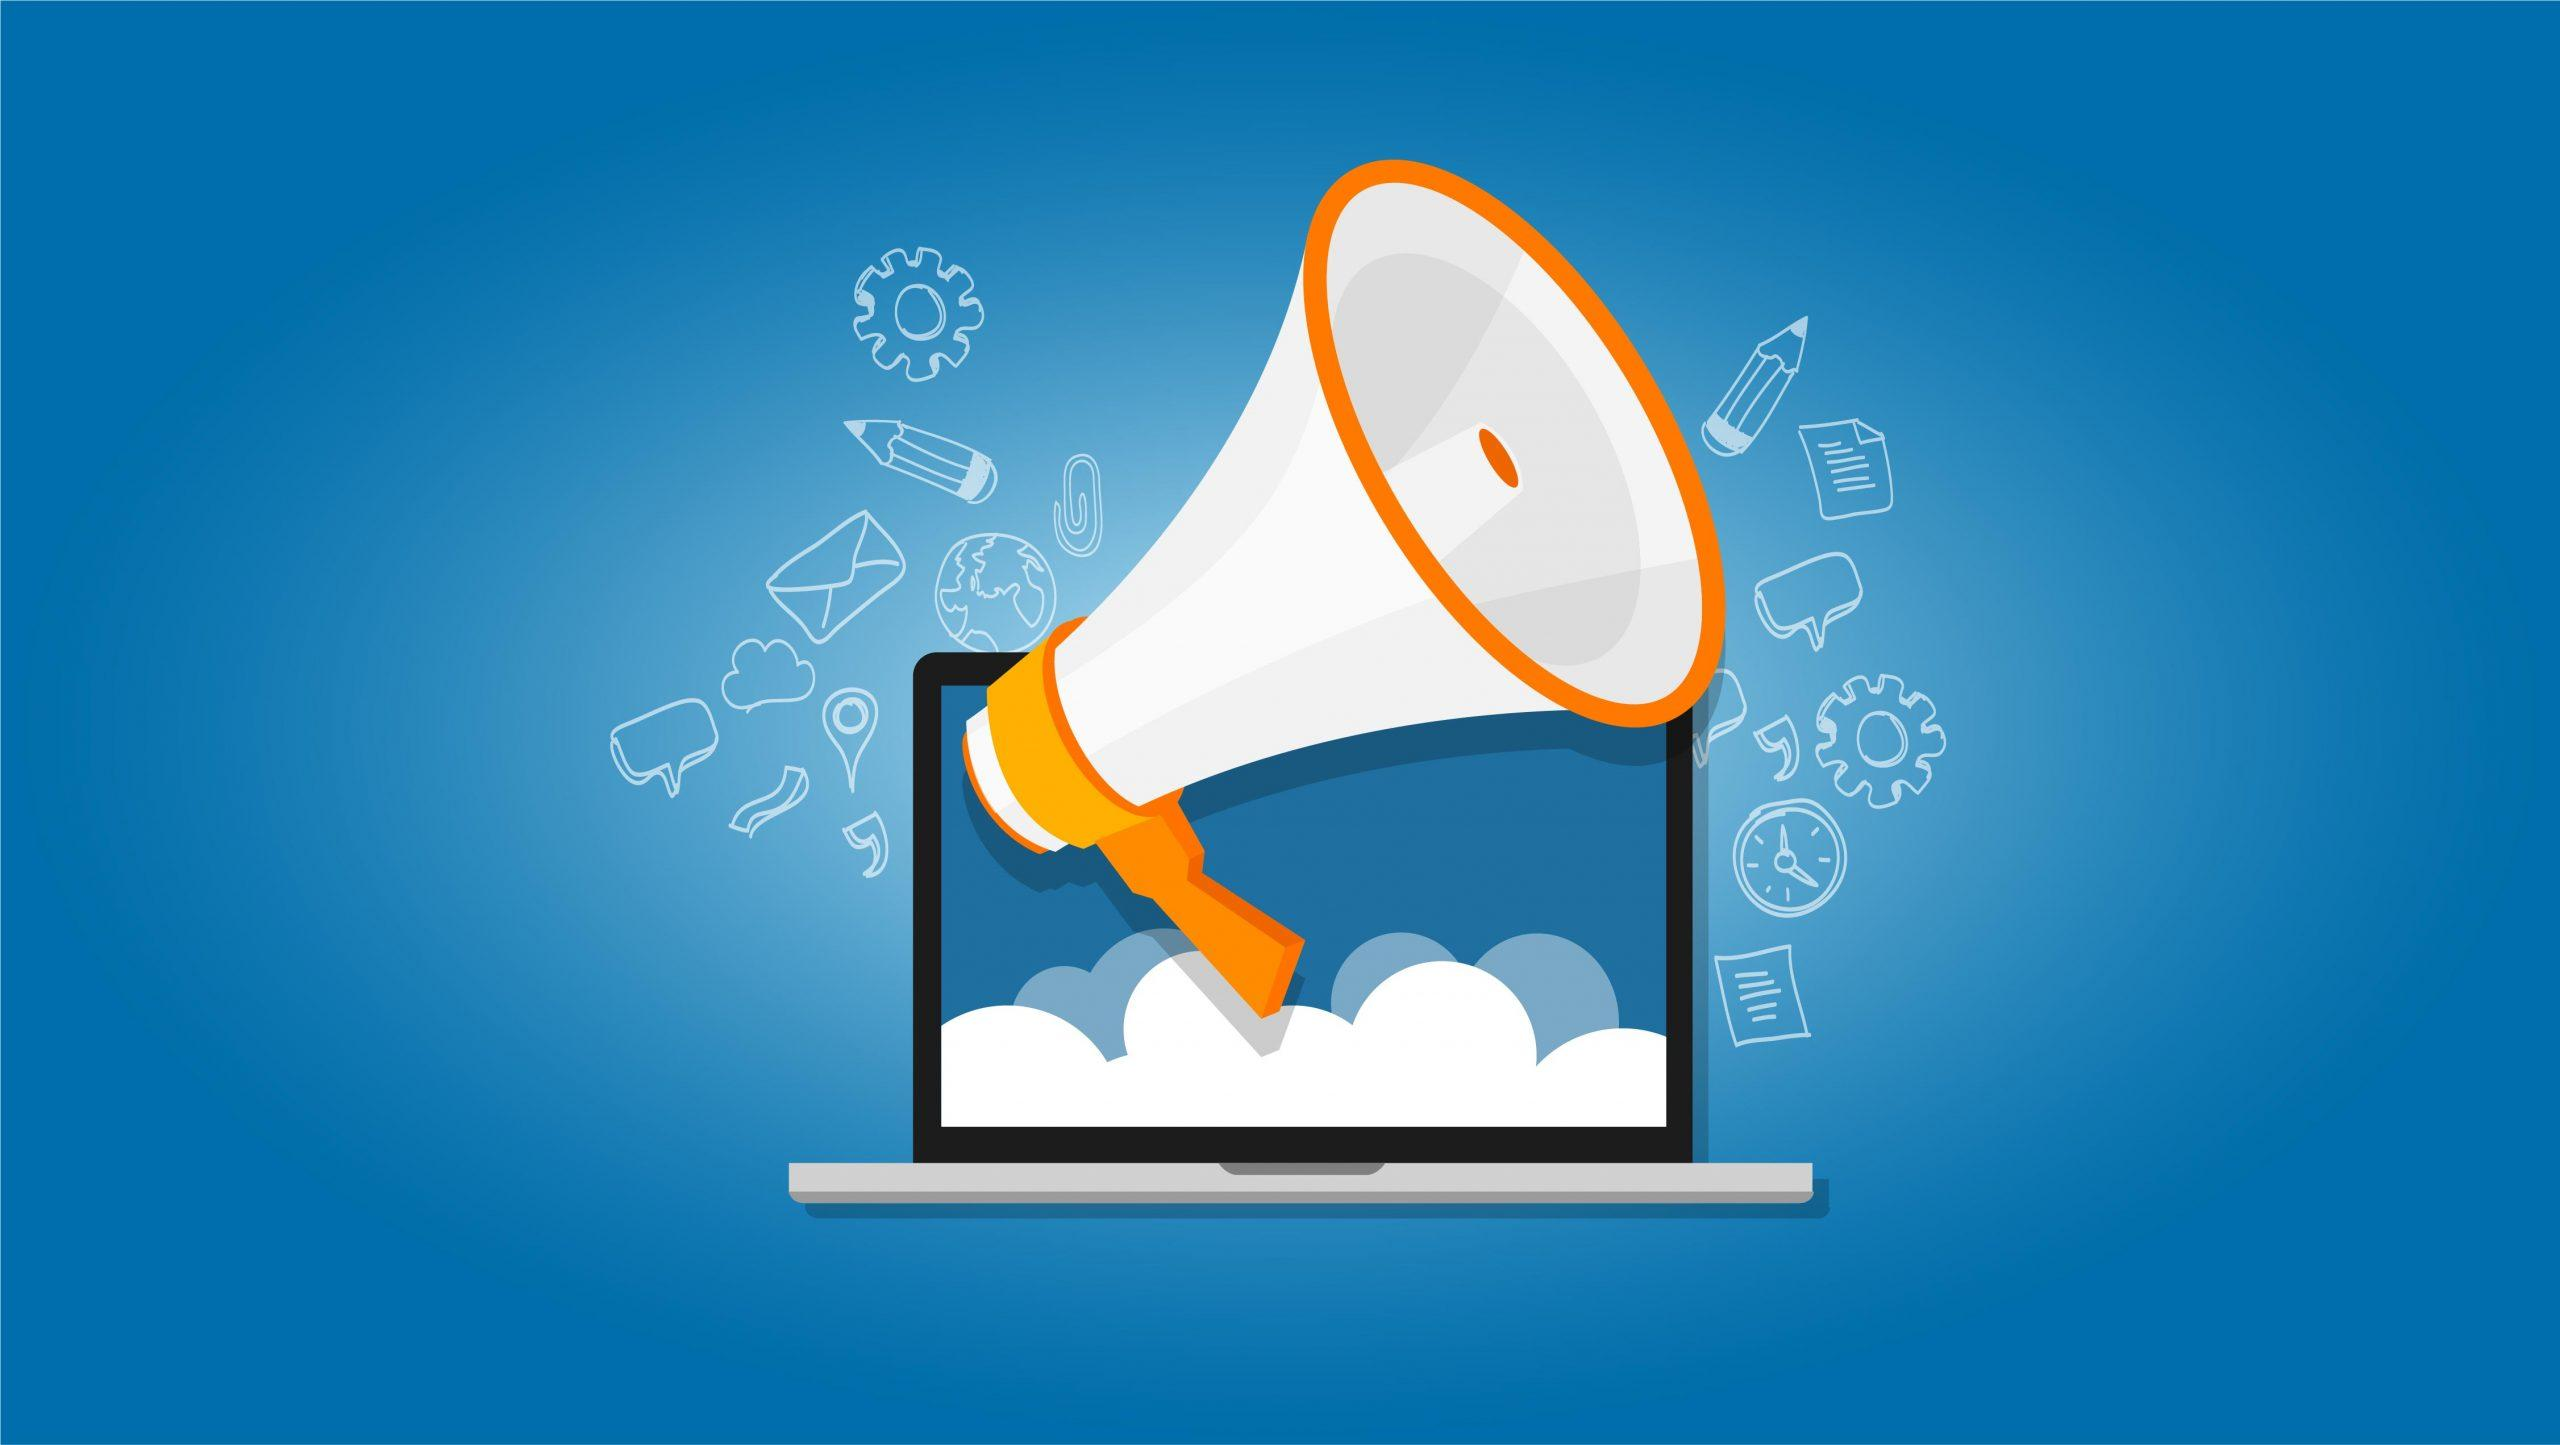 7 Tips for Building a Consistent Brand Voice